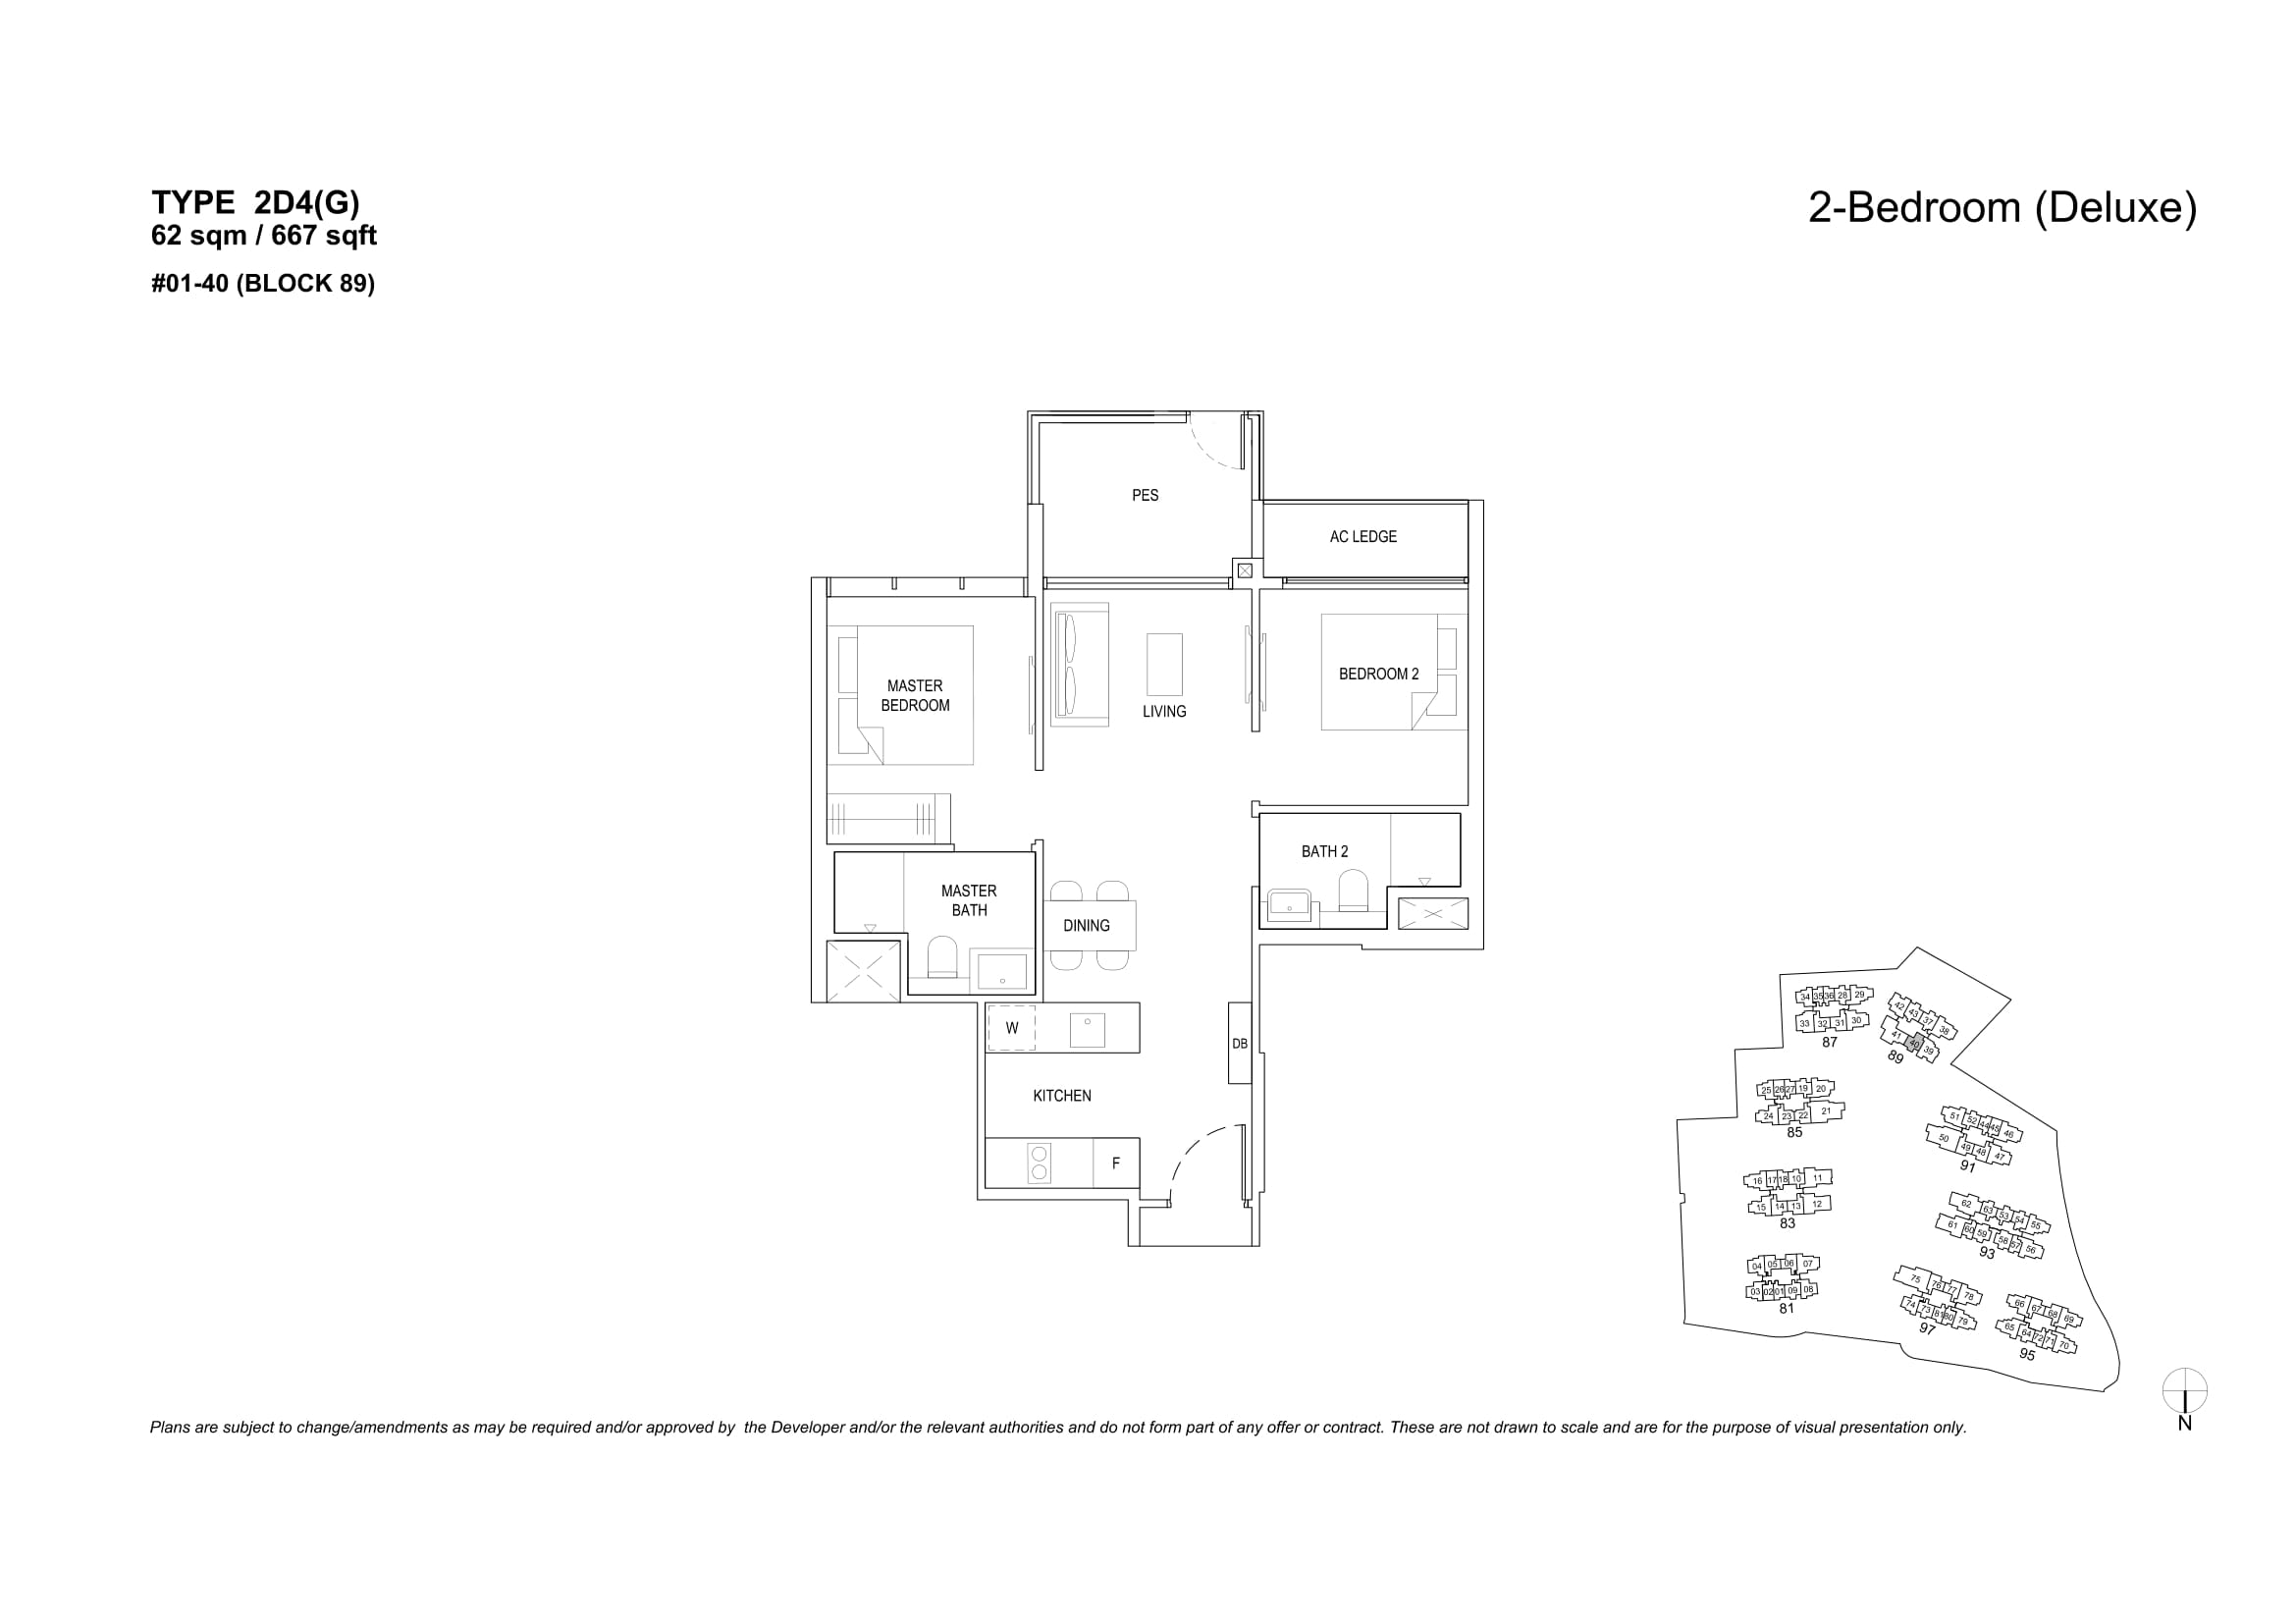 The Florence Residences' two-bedroom deluxe types